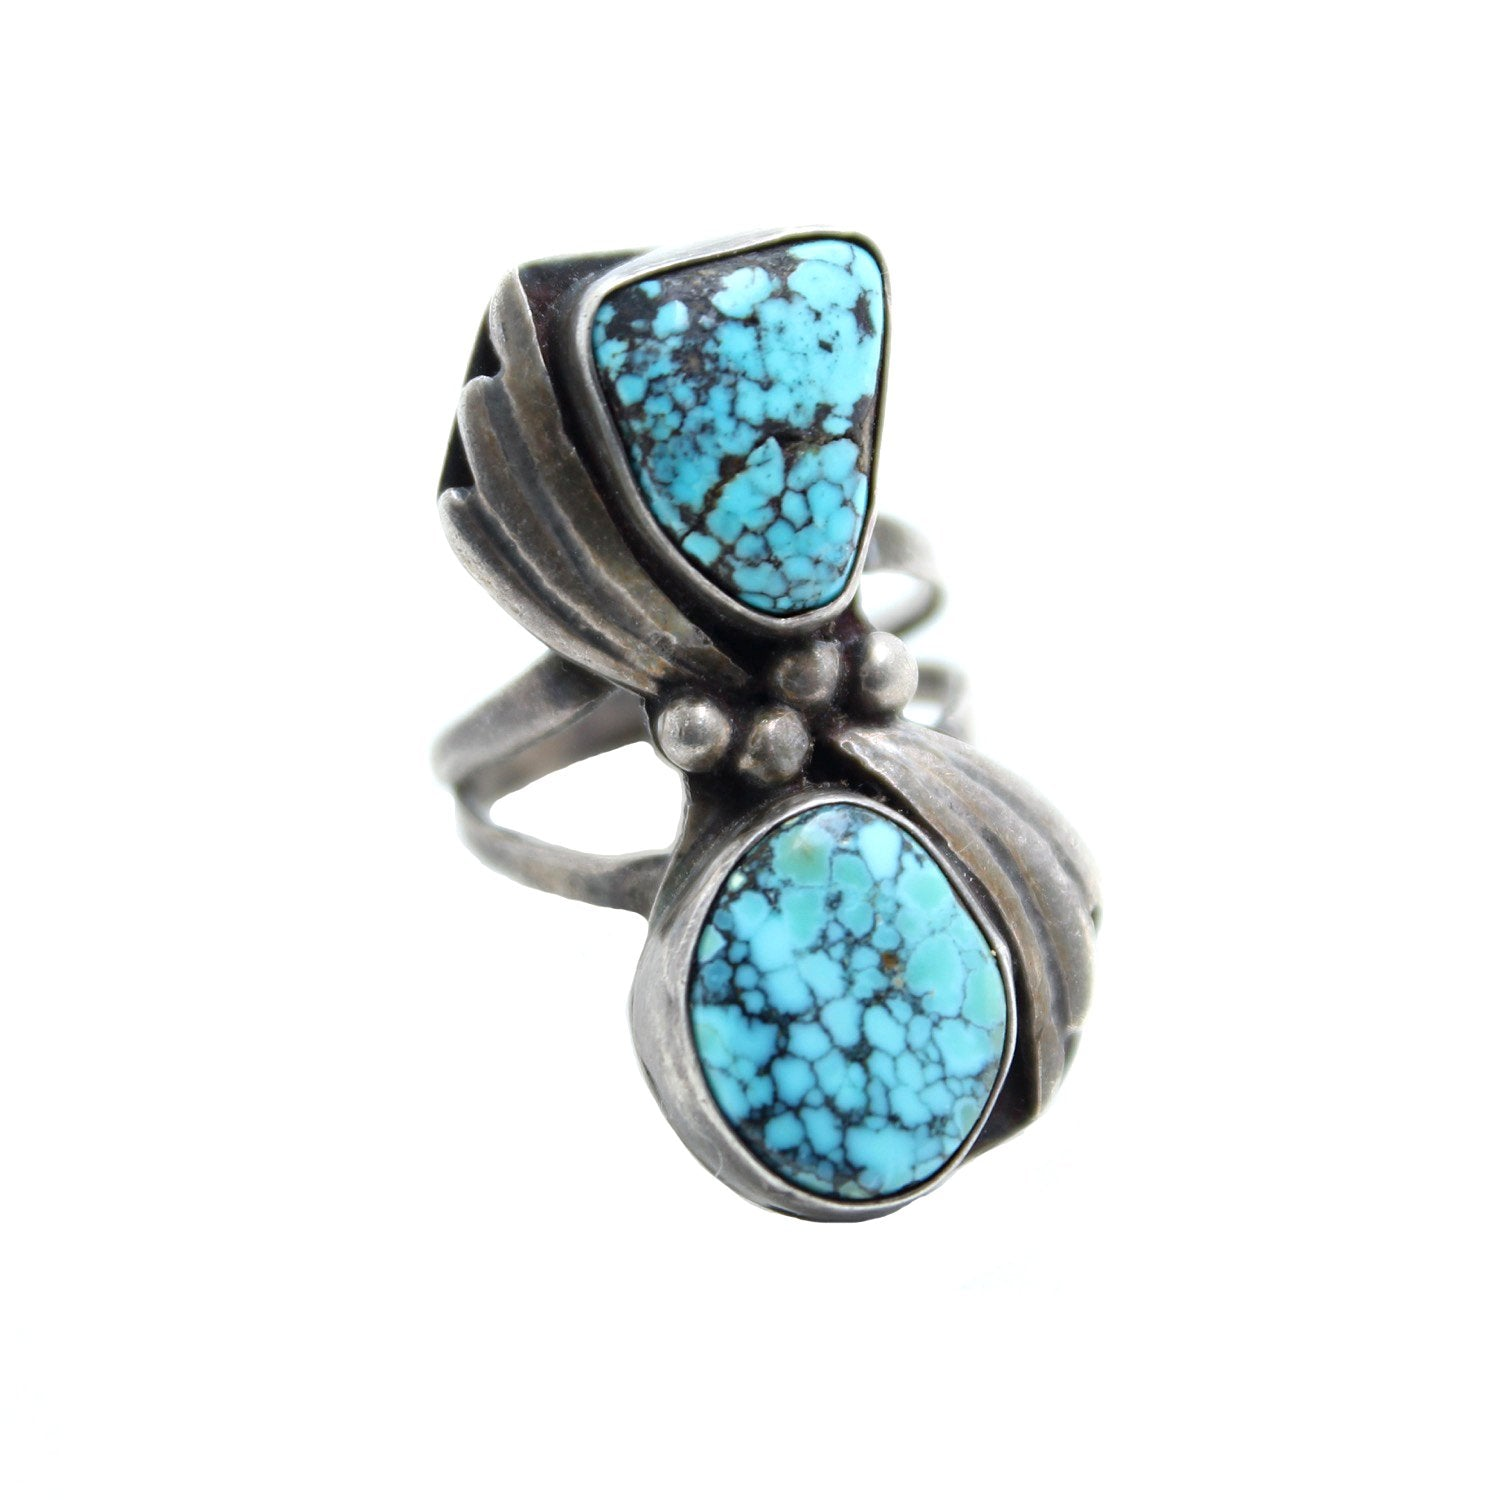 spinning ring peace stone mind sterling silver with rings stones pom image of turquoise